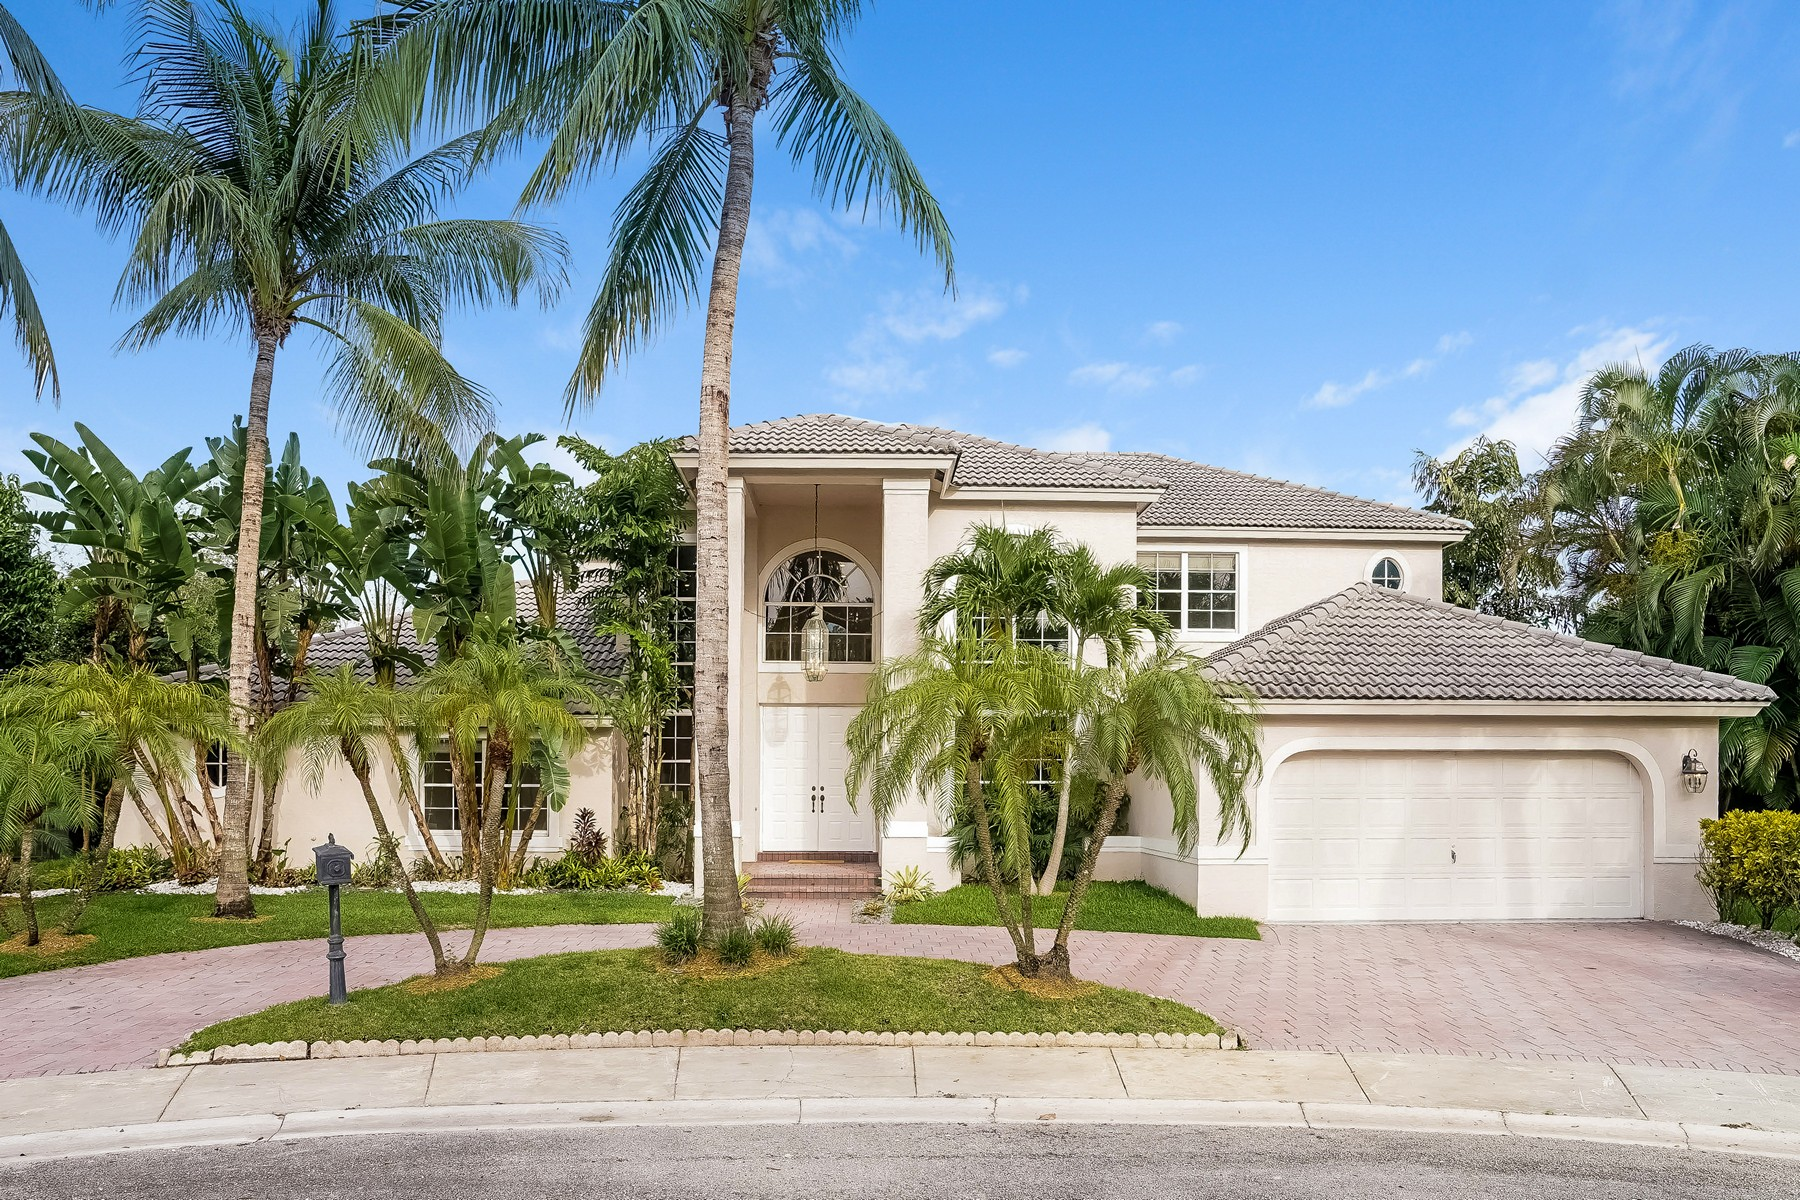 Single Family Home for Sale at 3288 Huntington Weston, Florida, 33332 United States